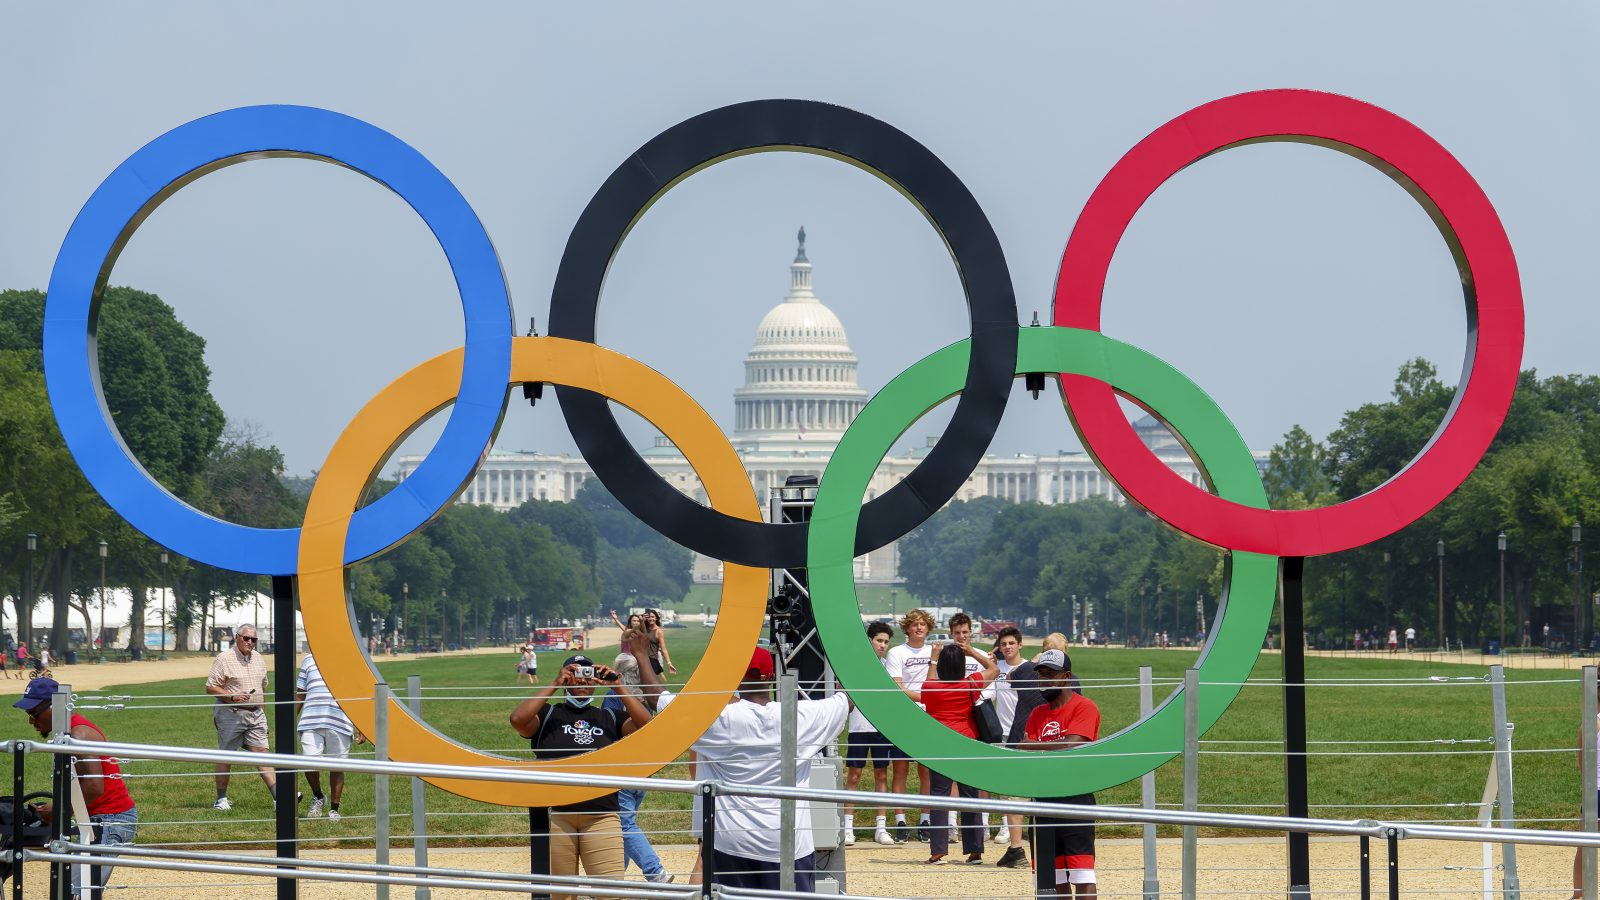 Capitol Building in the background of intersection five large Olympic rings